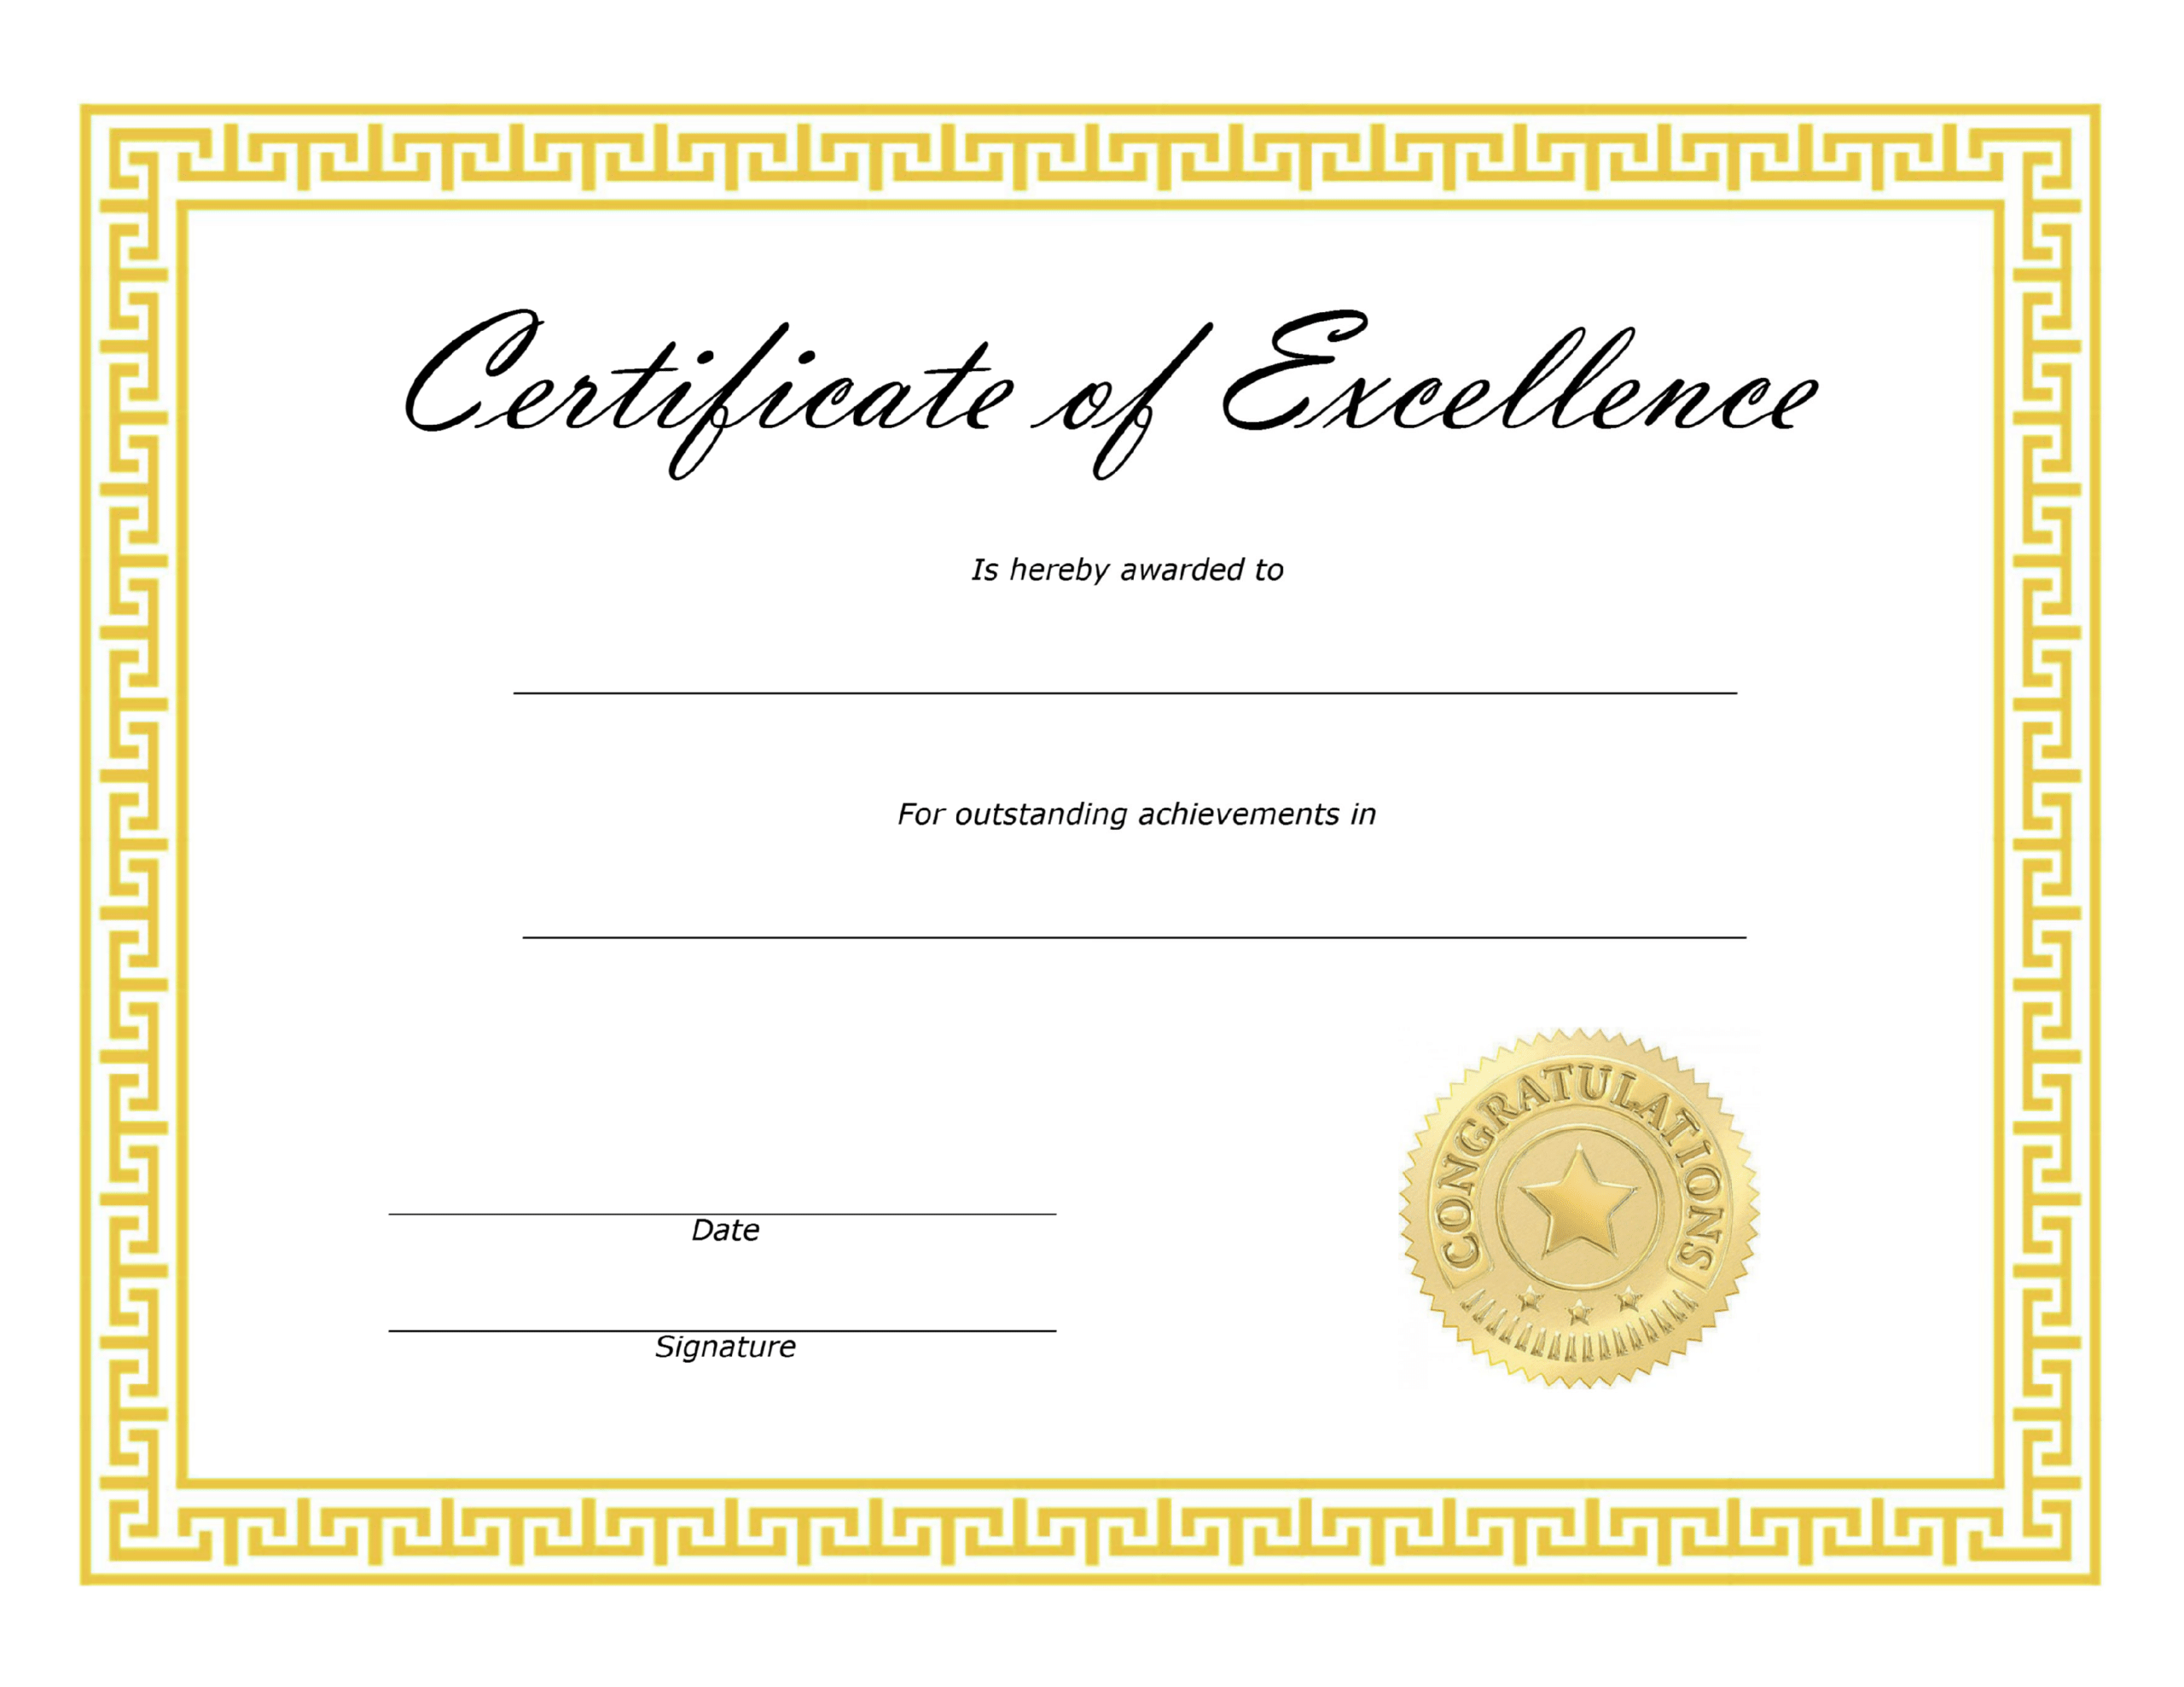 ❤️ Free Sample Certificate Of Excellence Templates❤️ With Regard To Certificate Of Excellence Template Free Download